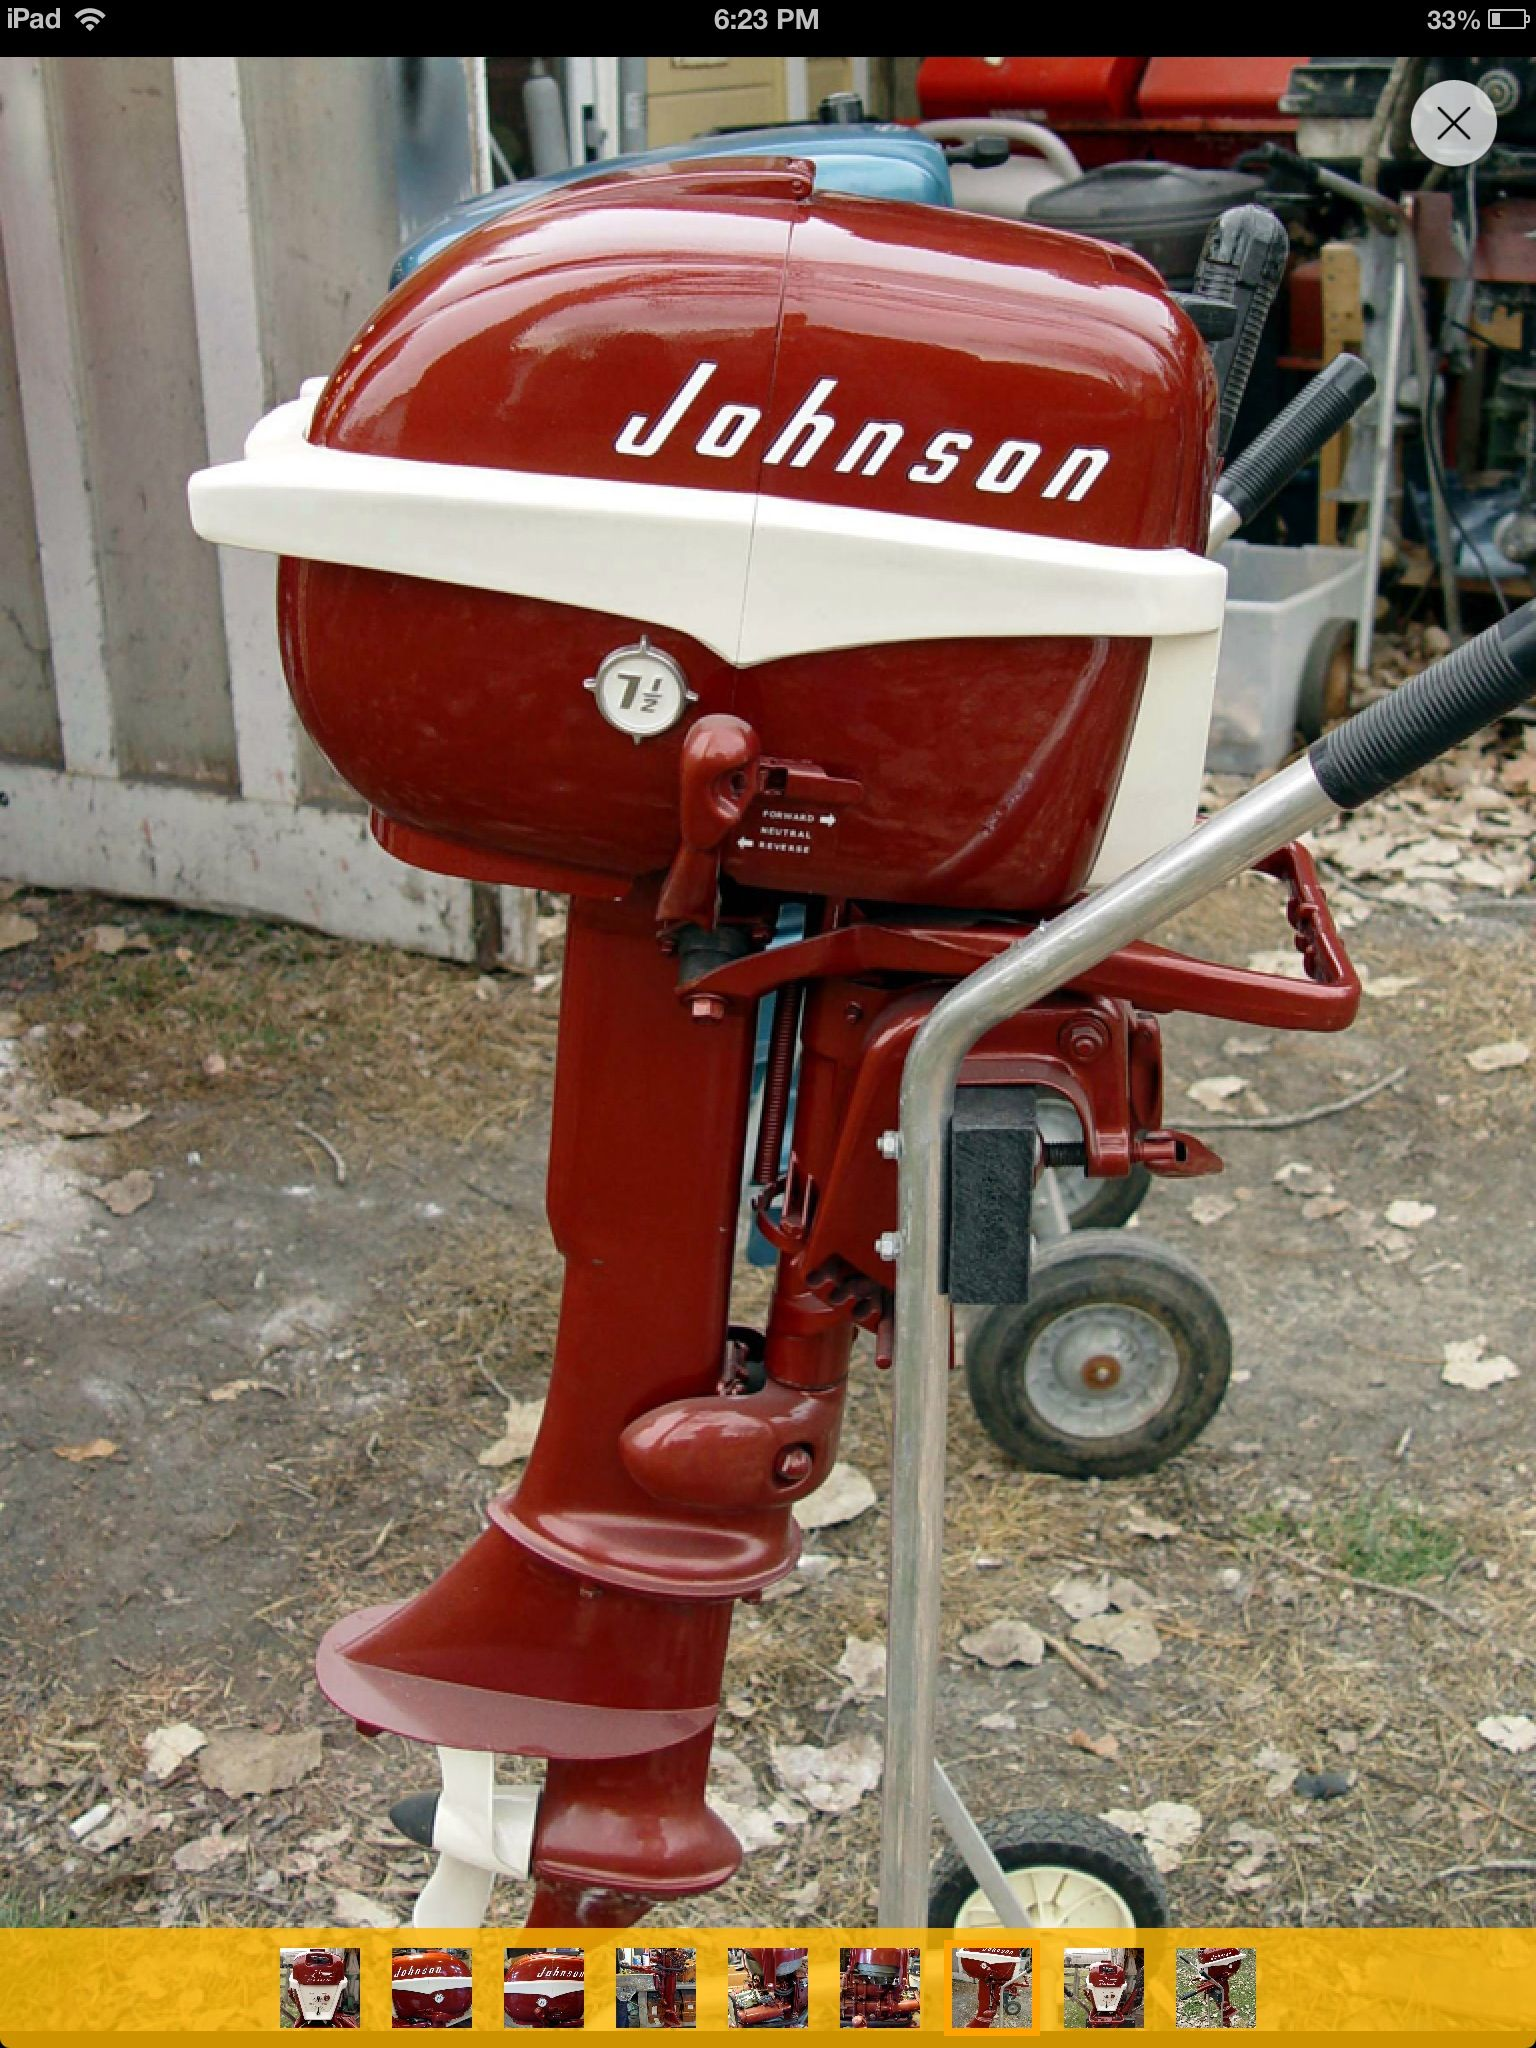 Johnson outboard motor - 1957 7.5 HP